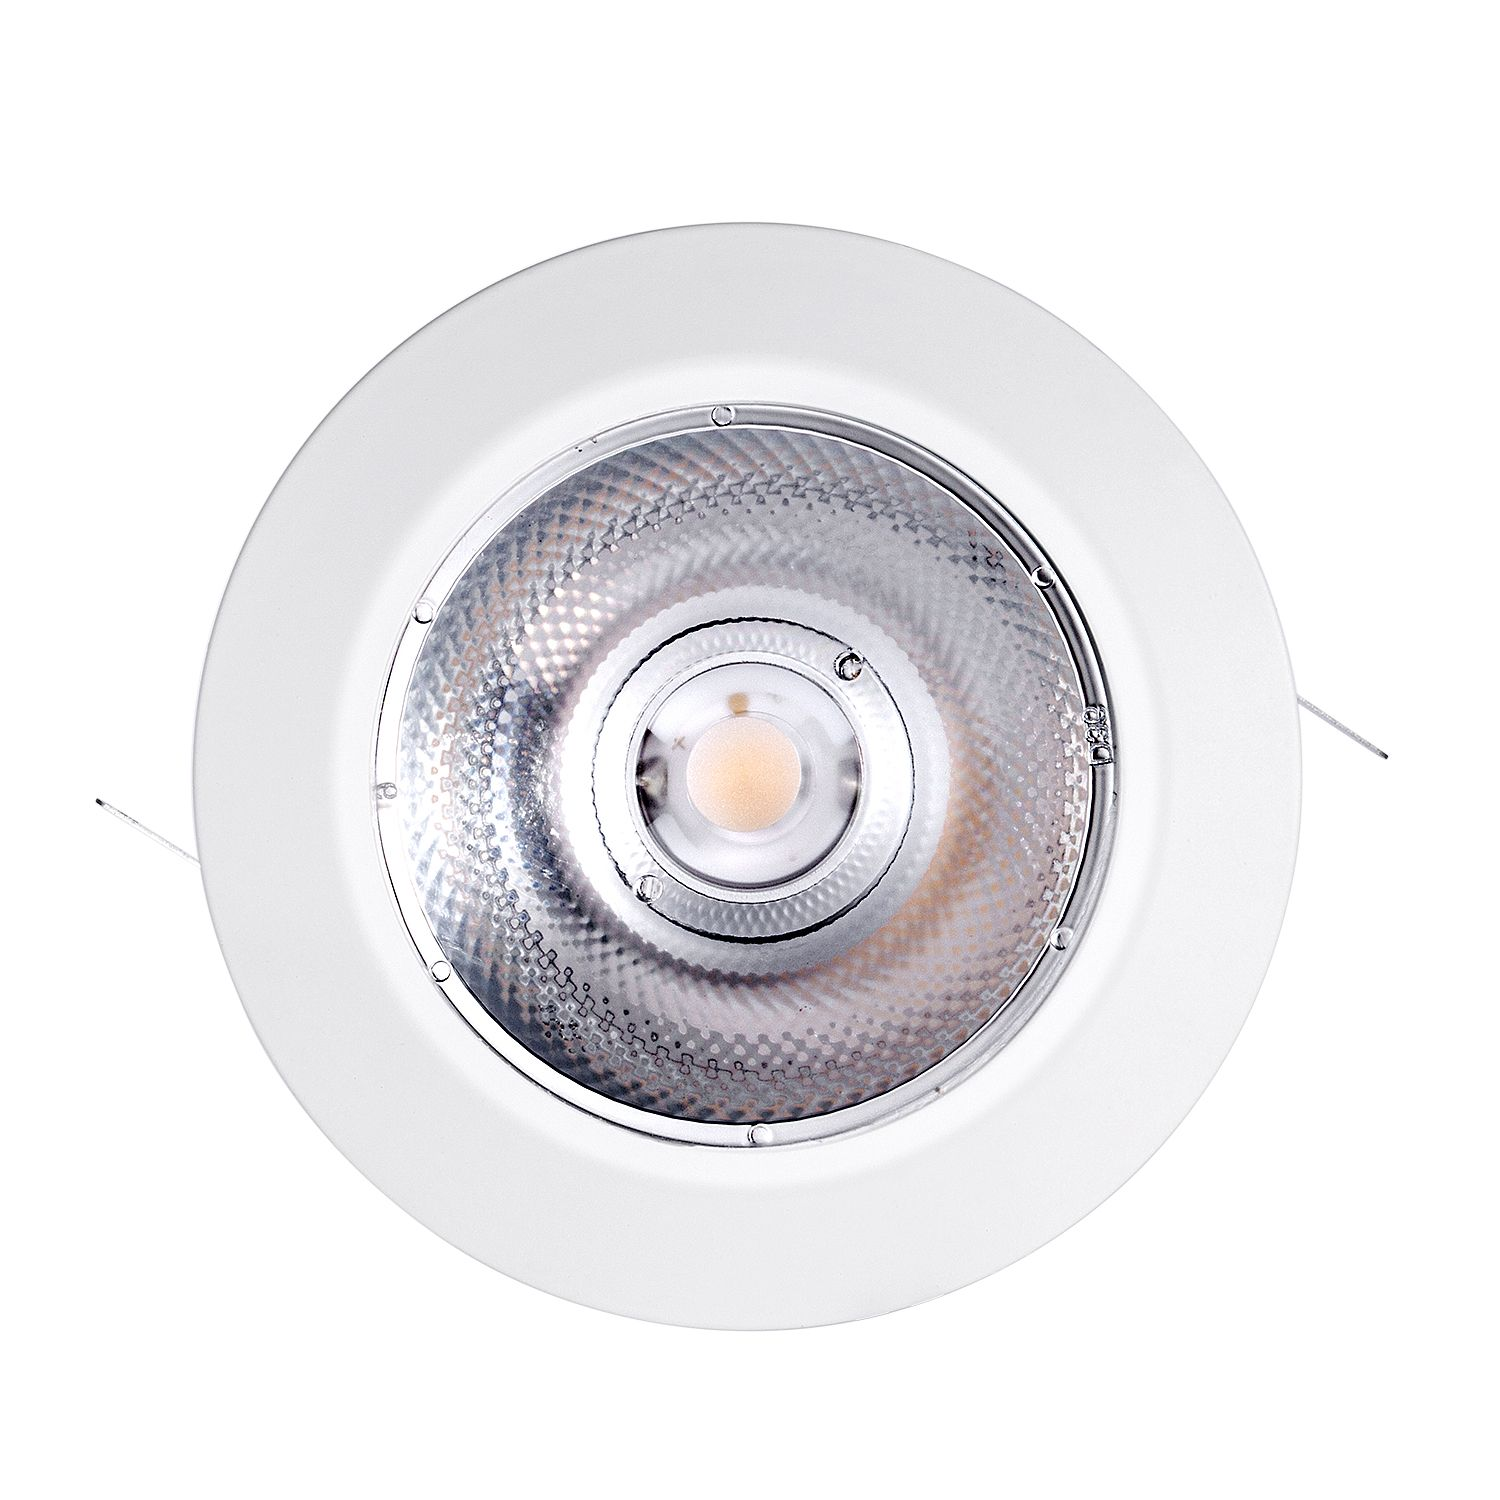 Downlighter 75mm 6W 2000-2800K dimbaar Inbouw 36° hoogte 18mm